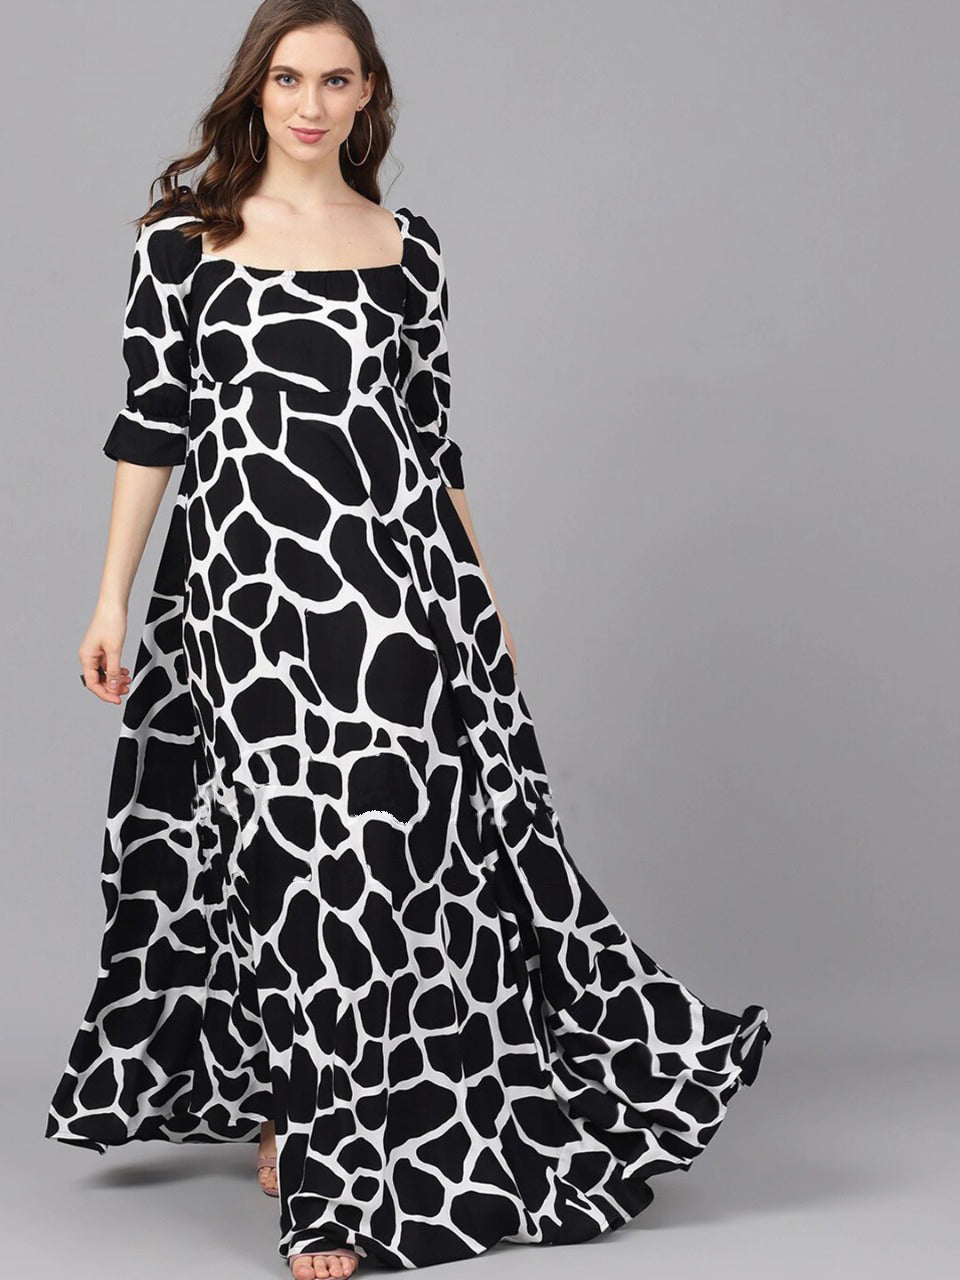 Beautiful Black and White Maxi Dress